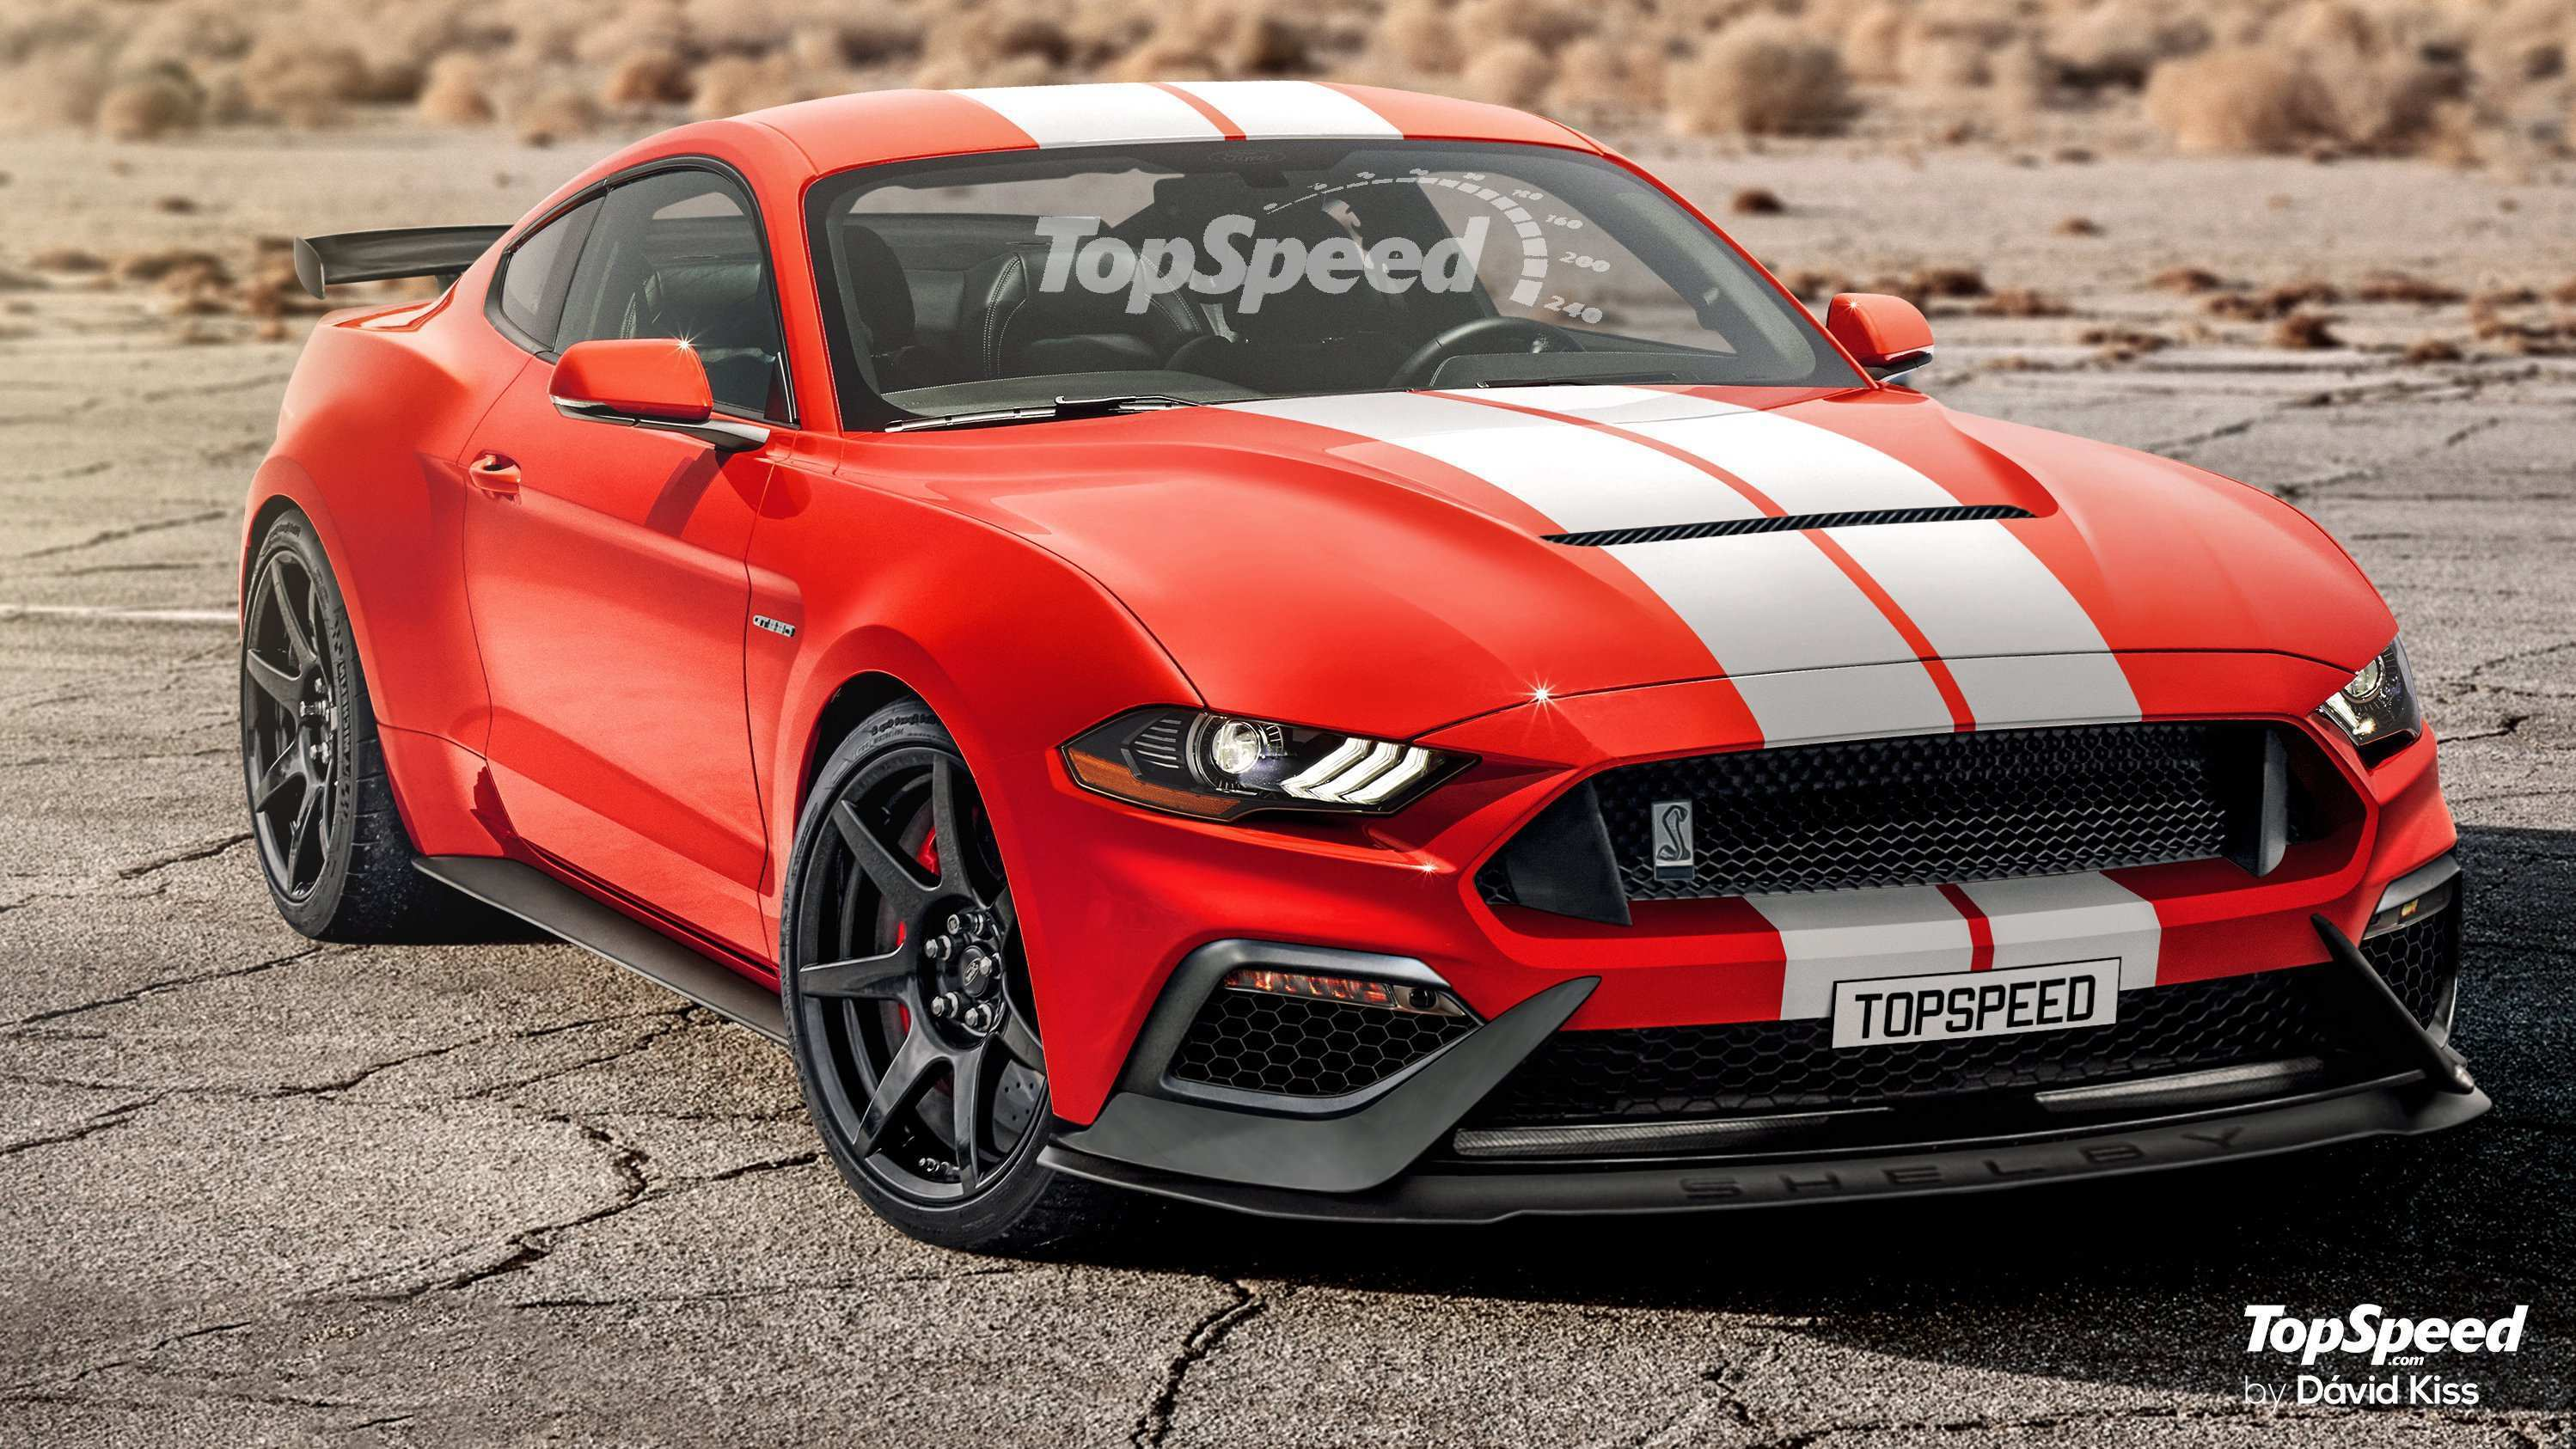 27 New Spy Shots 2020 Ford Mustang Svt Gt 500 Redesign and Concept for Spy Shots 2020 Ford Mustang Svt Gt 500